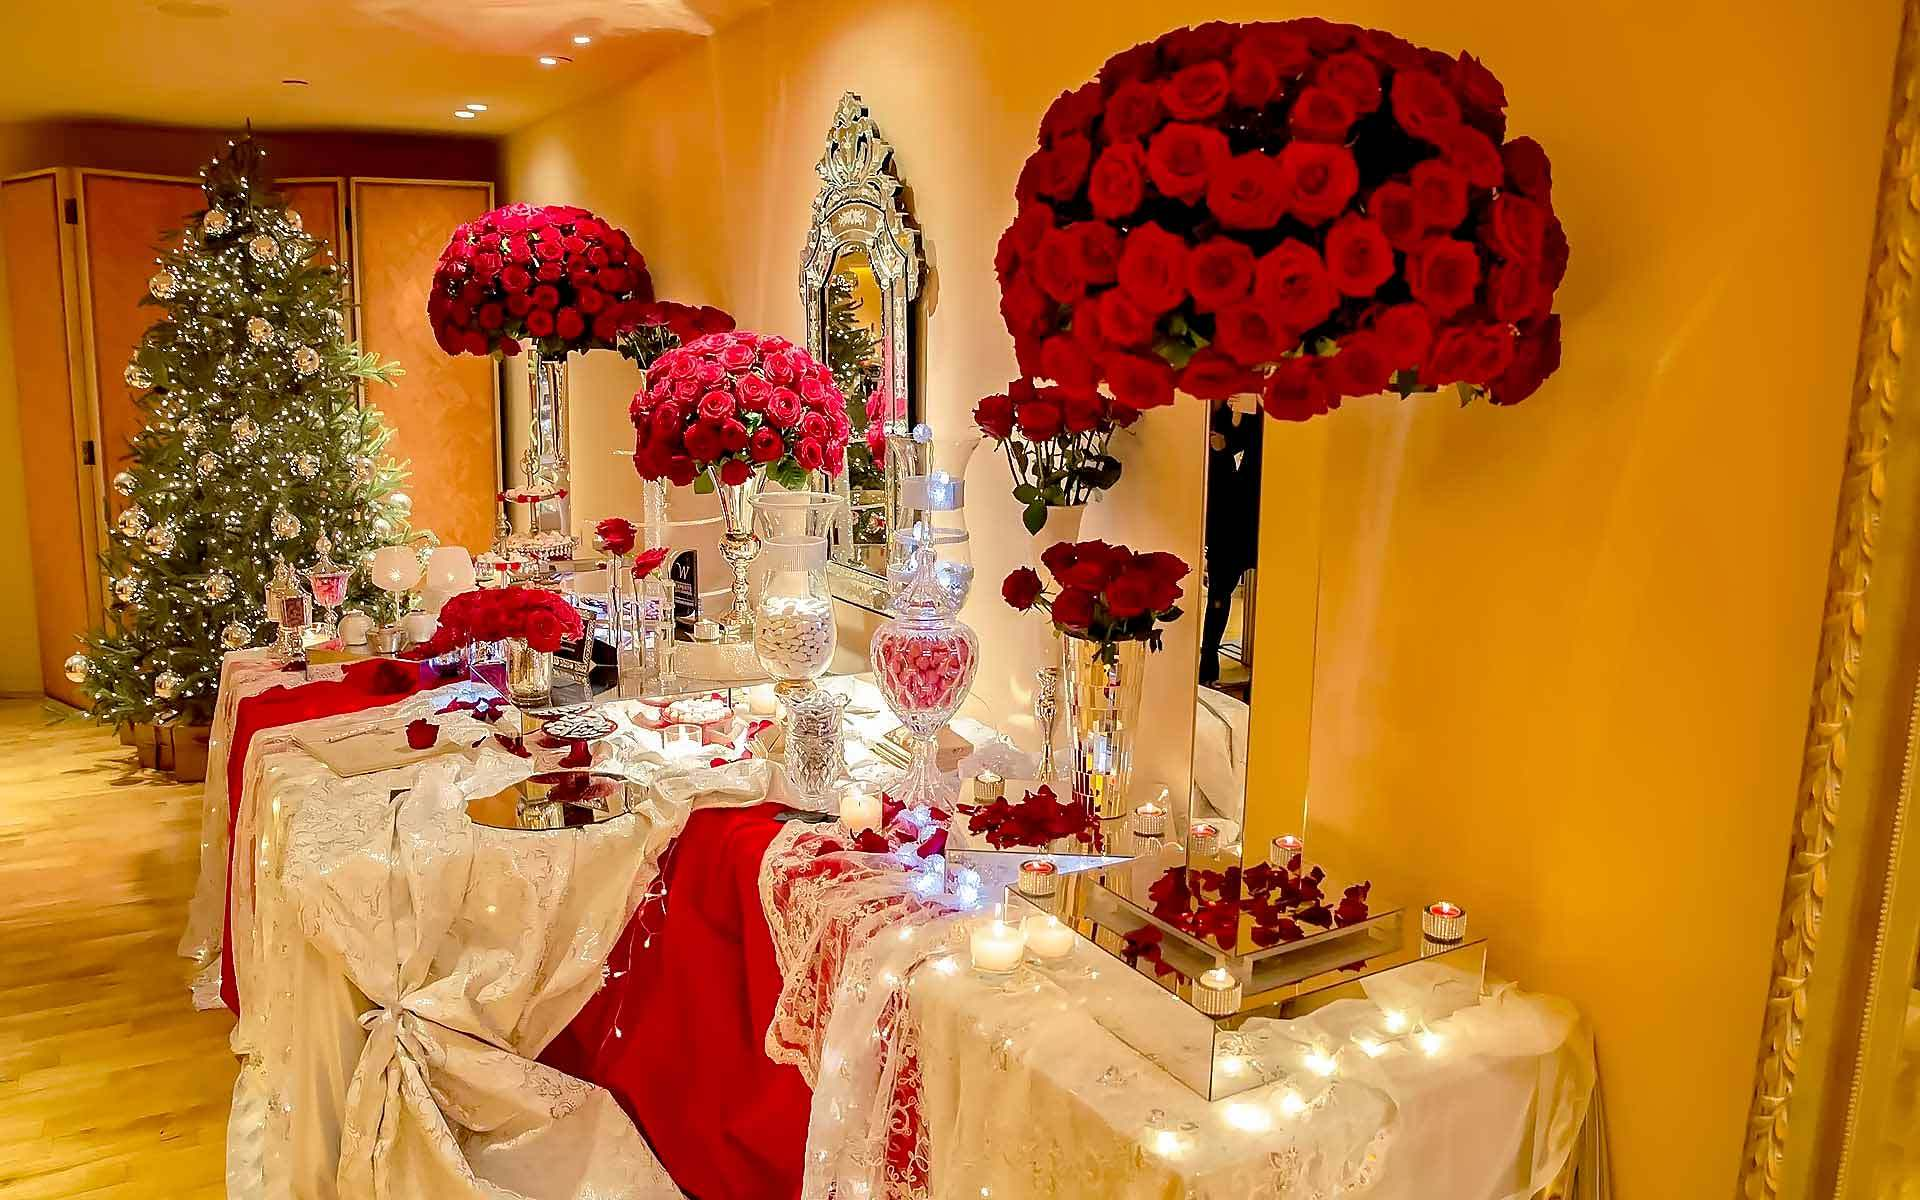 Luxurious-Christmas-Wedding-Reception-Decoration-With-Avalanche-Red-Roses